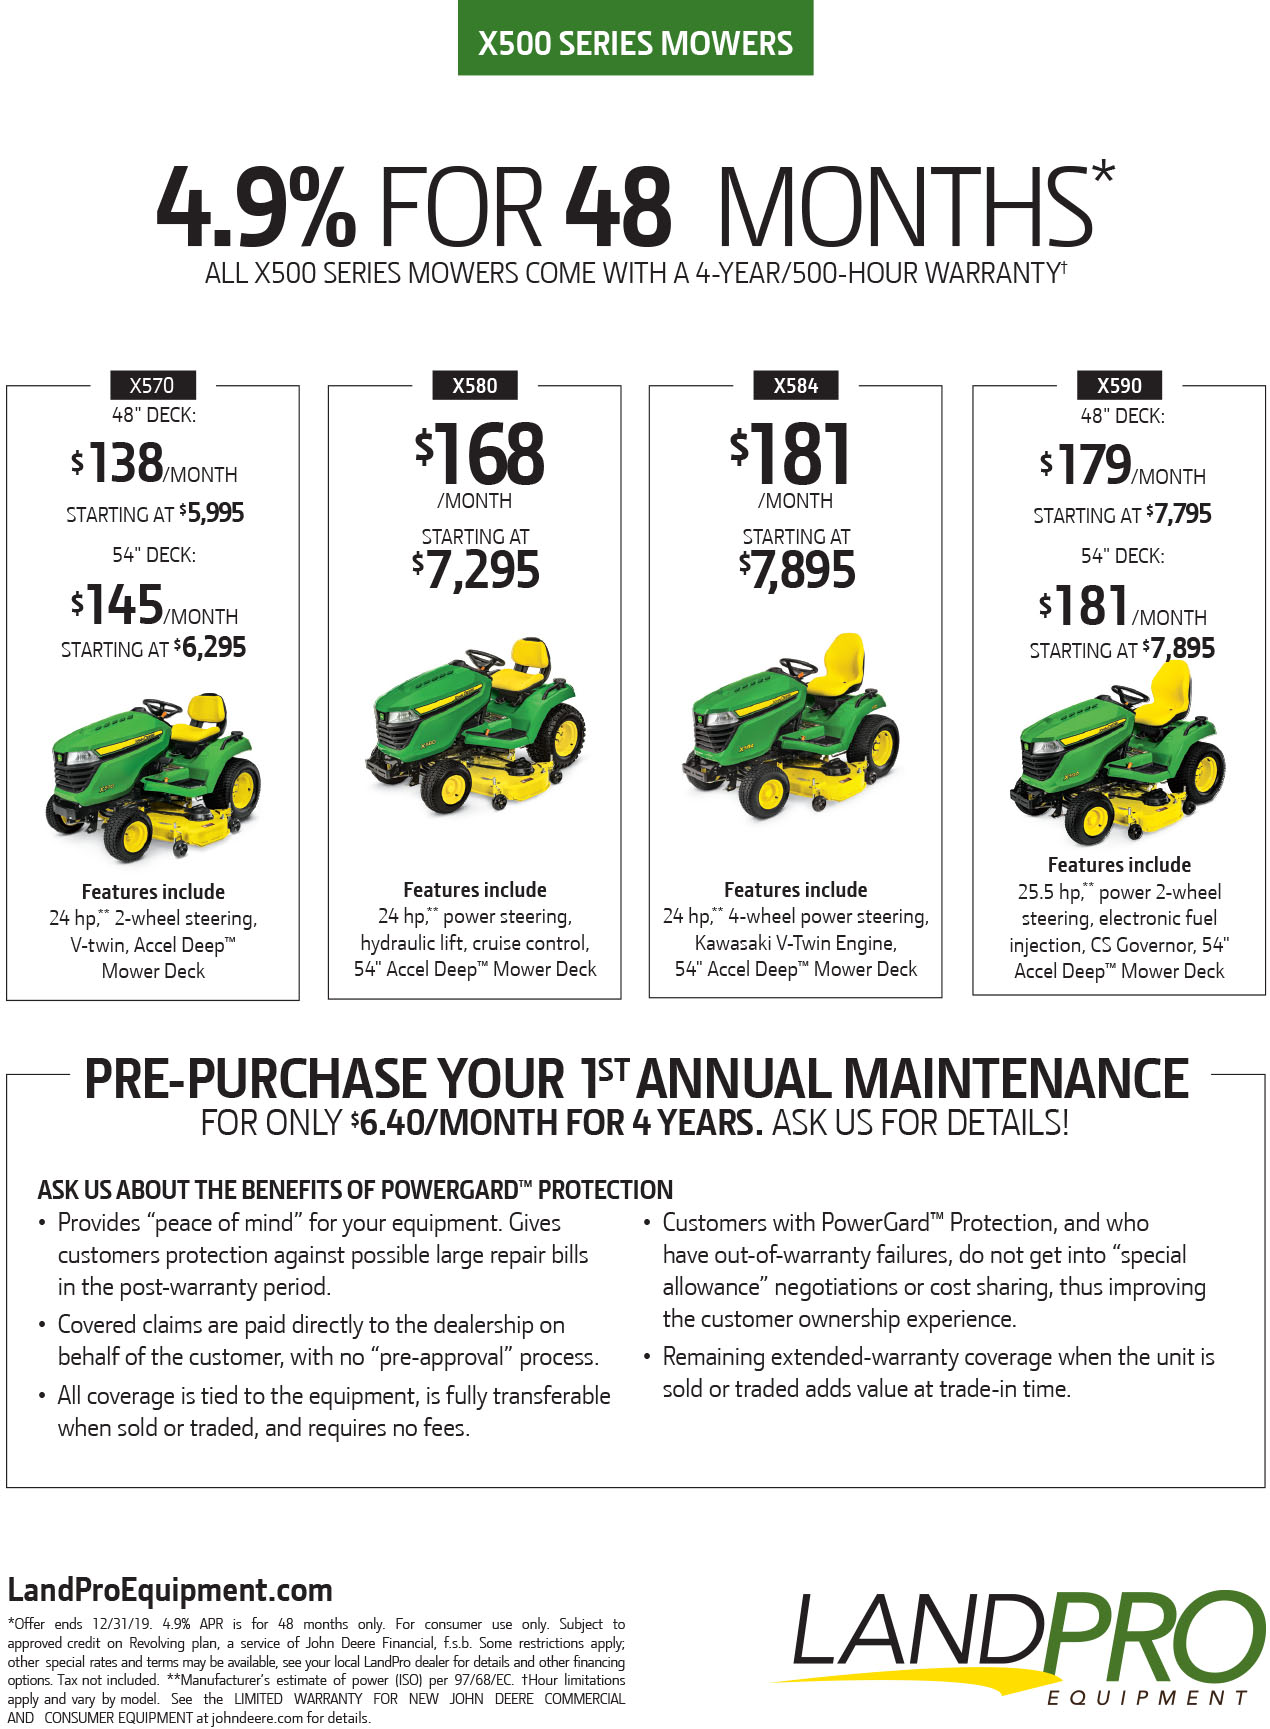 Vaughn Mower Fstdt: Mowers » LandPro Equipment; NY, OH & PA